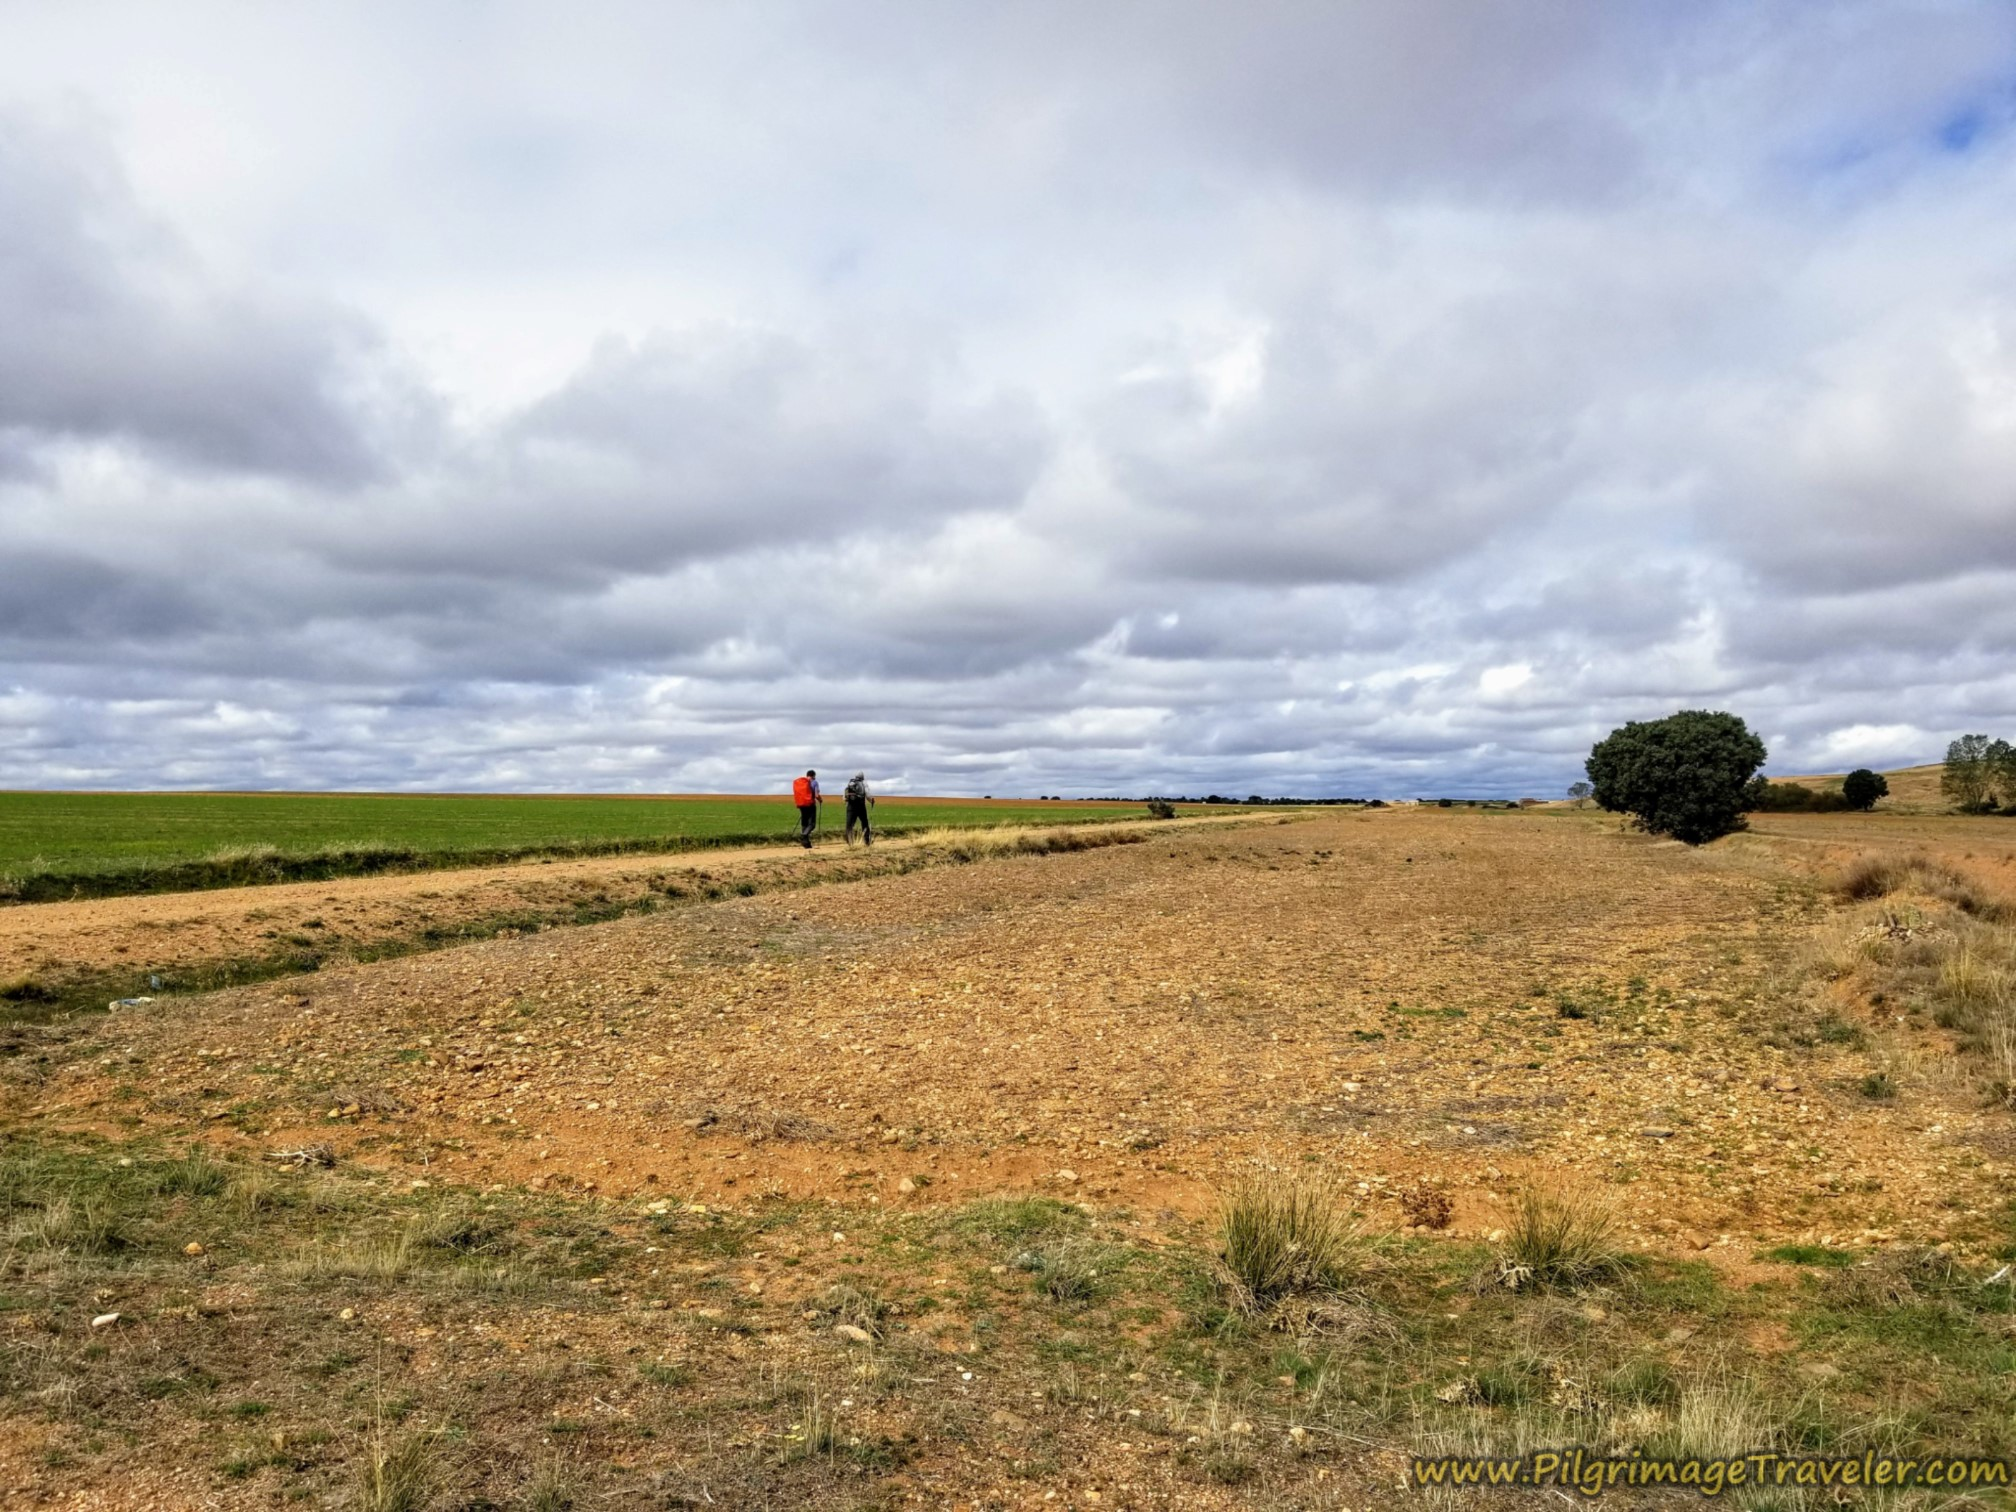 Walking Through Open Fields and Stormy Skies